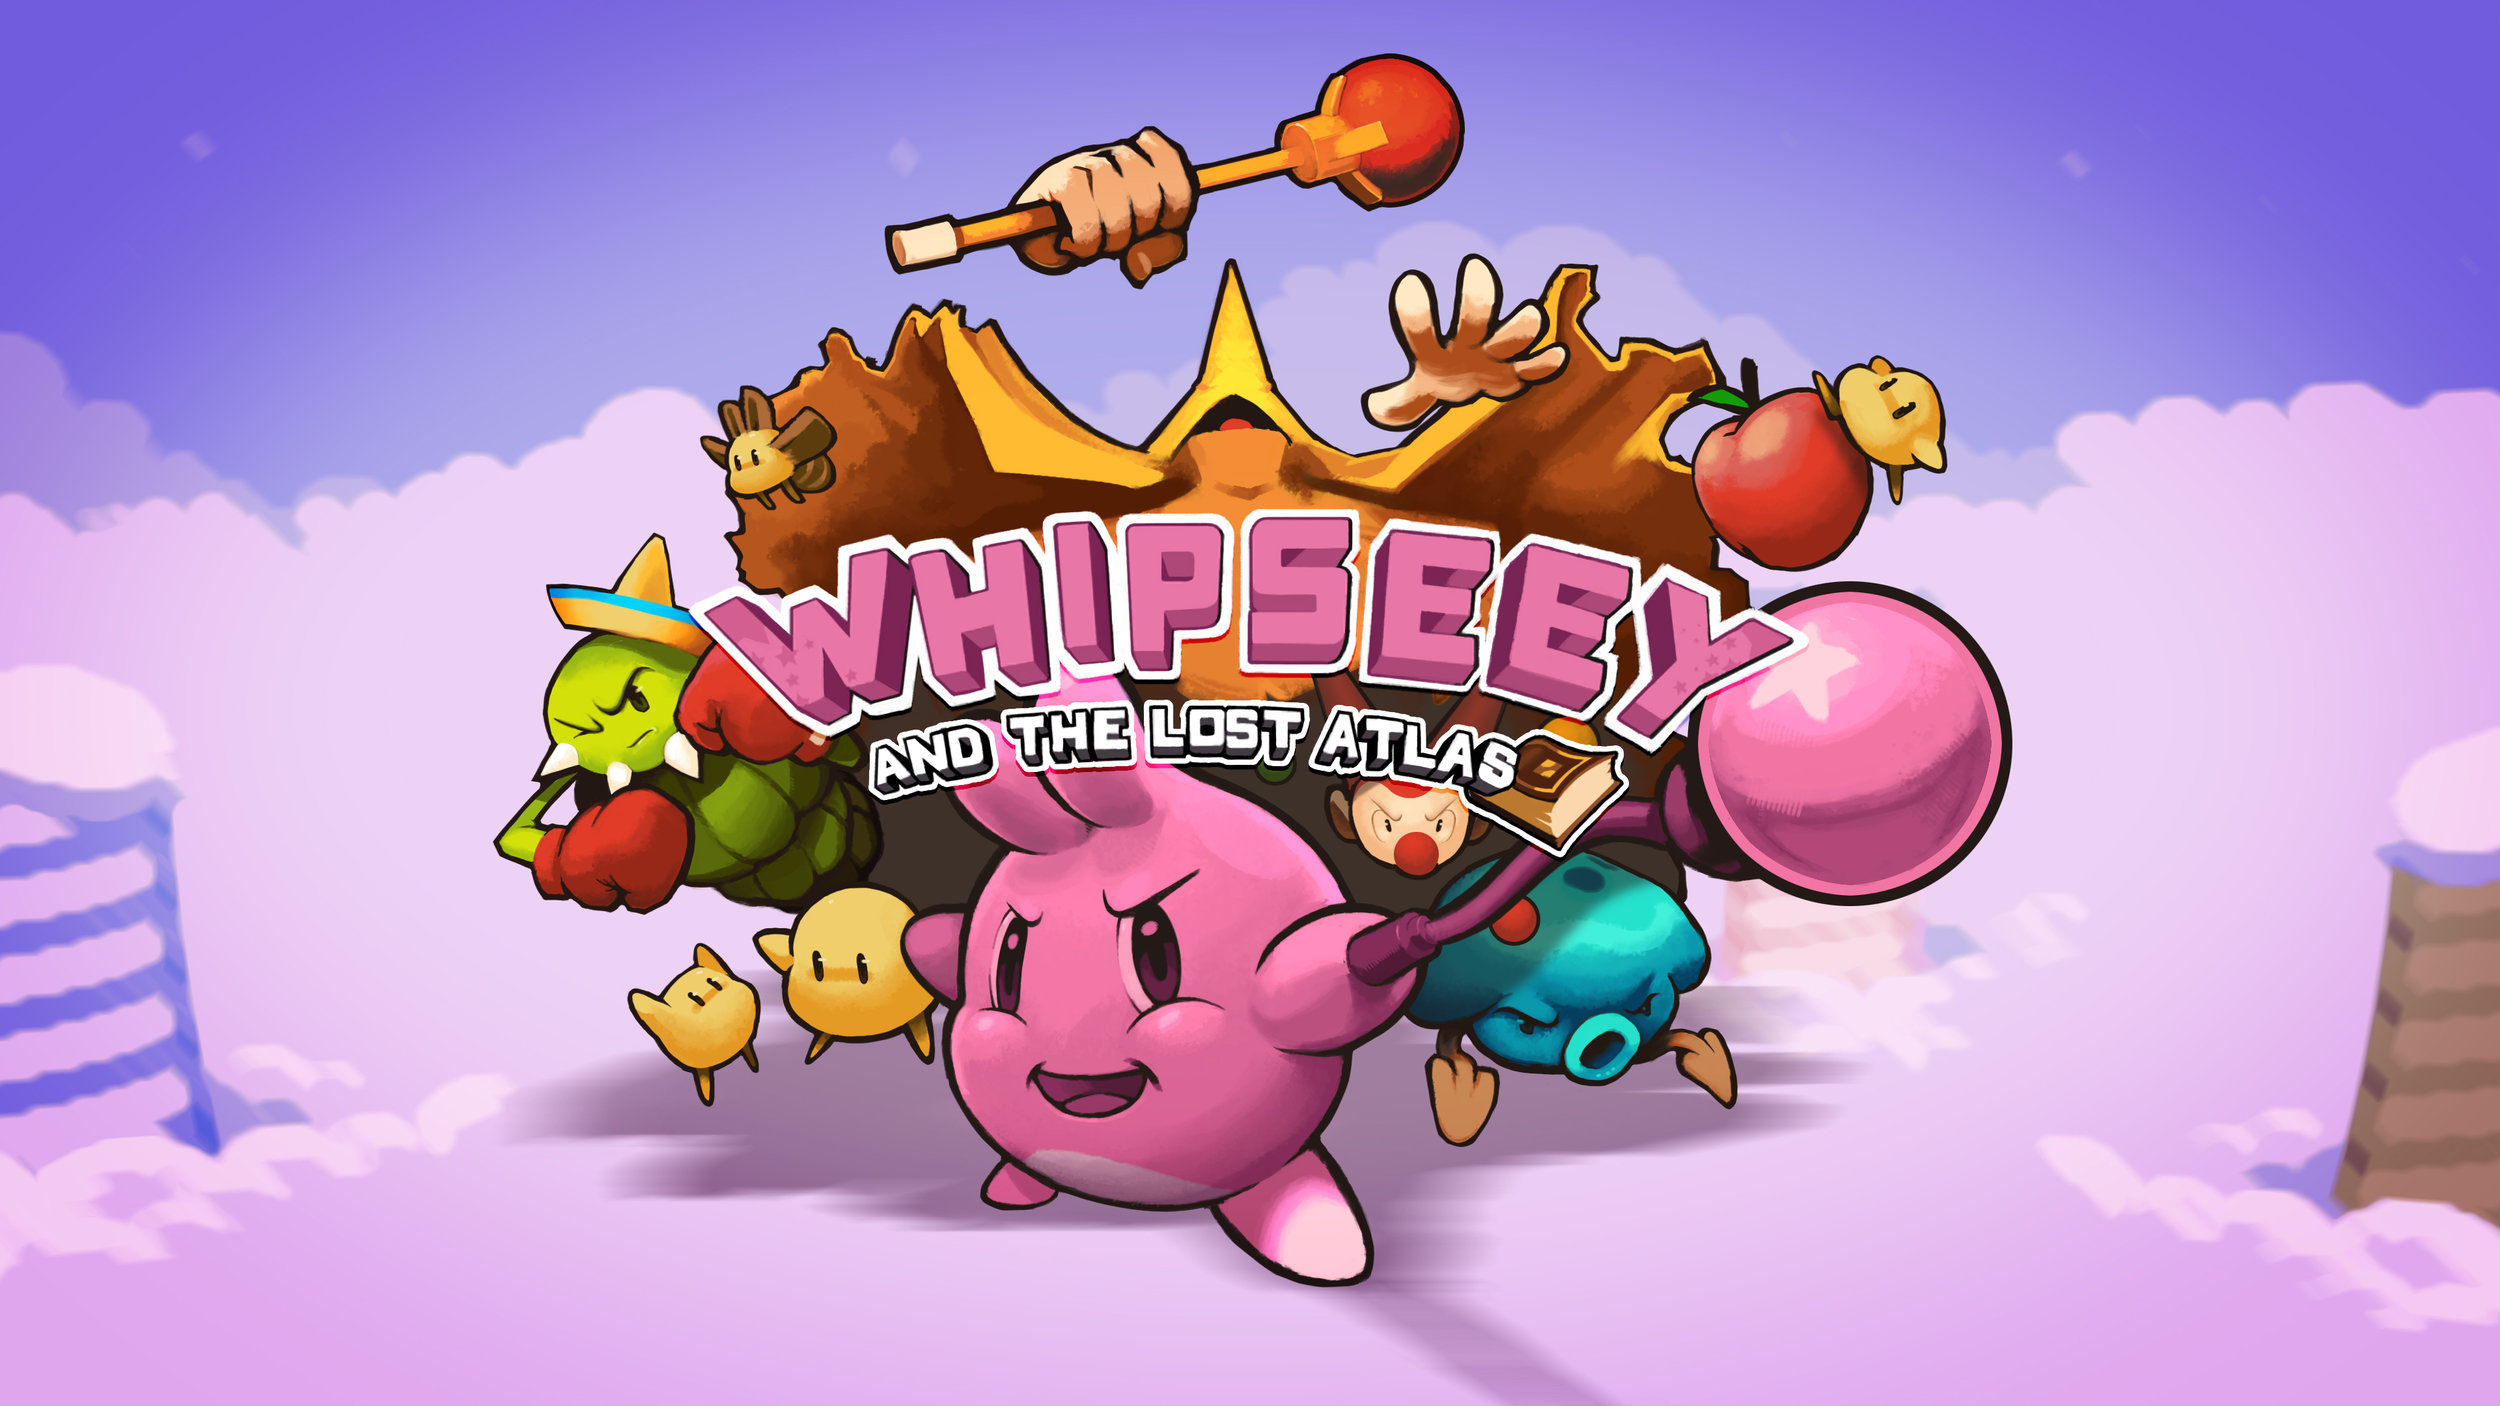 Whipseey-Cover-nocredits.jpg